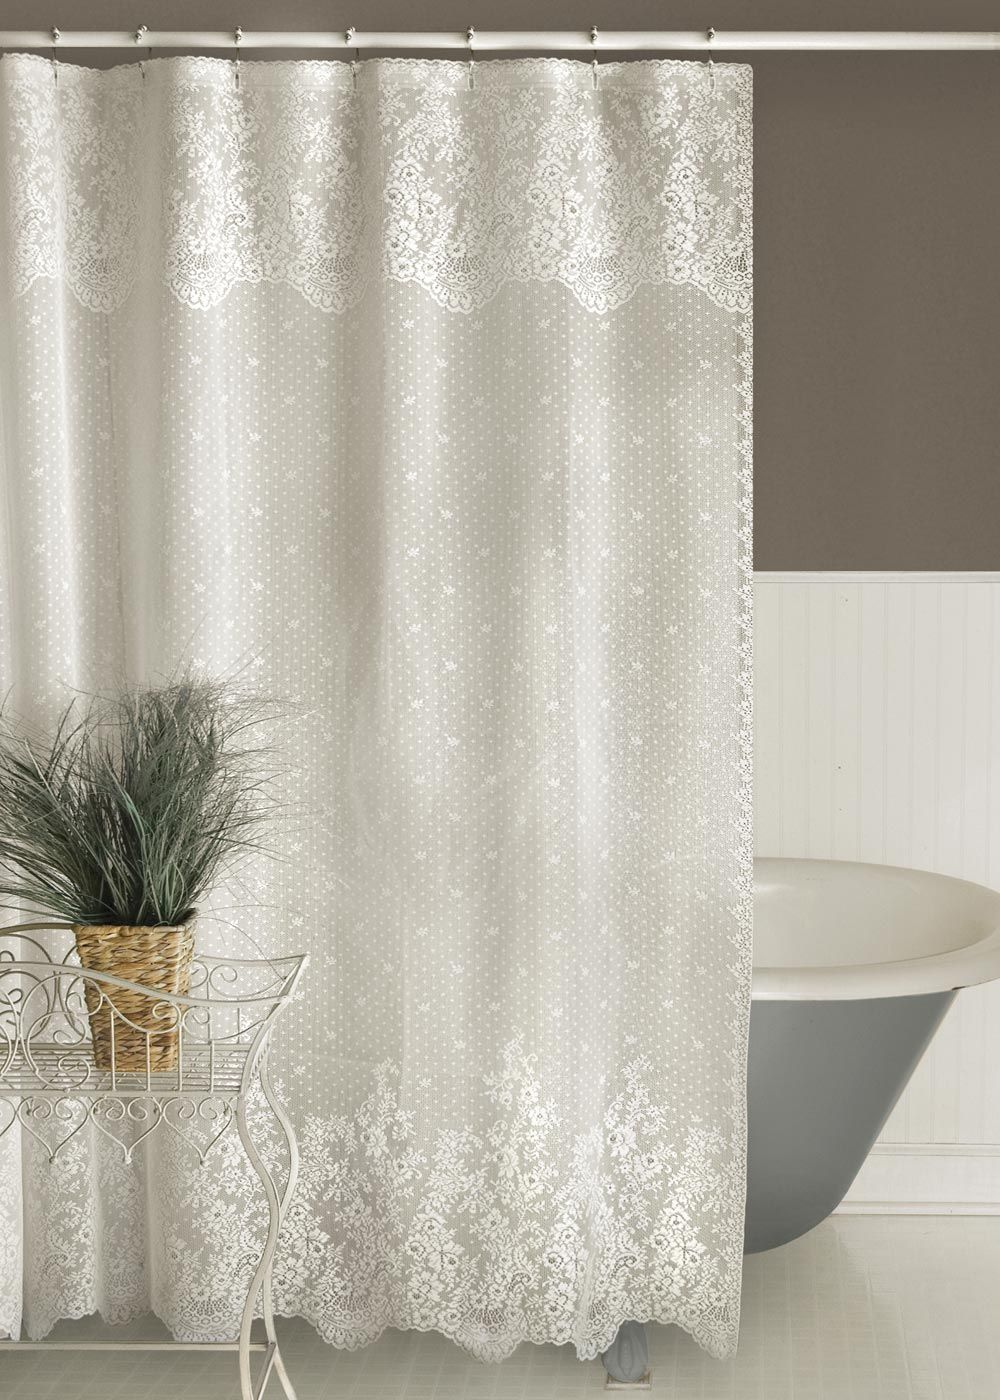 Sexy Shower Curtain Ideas floret shower curtain - what a beautiful shower curtain for the